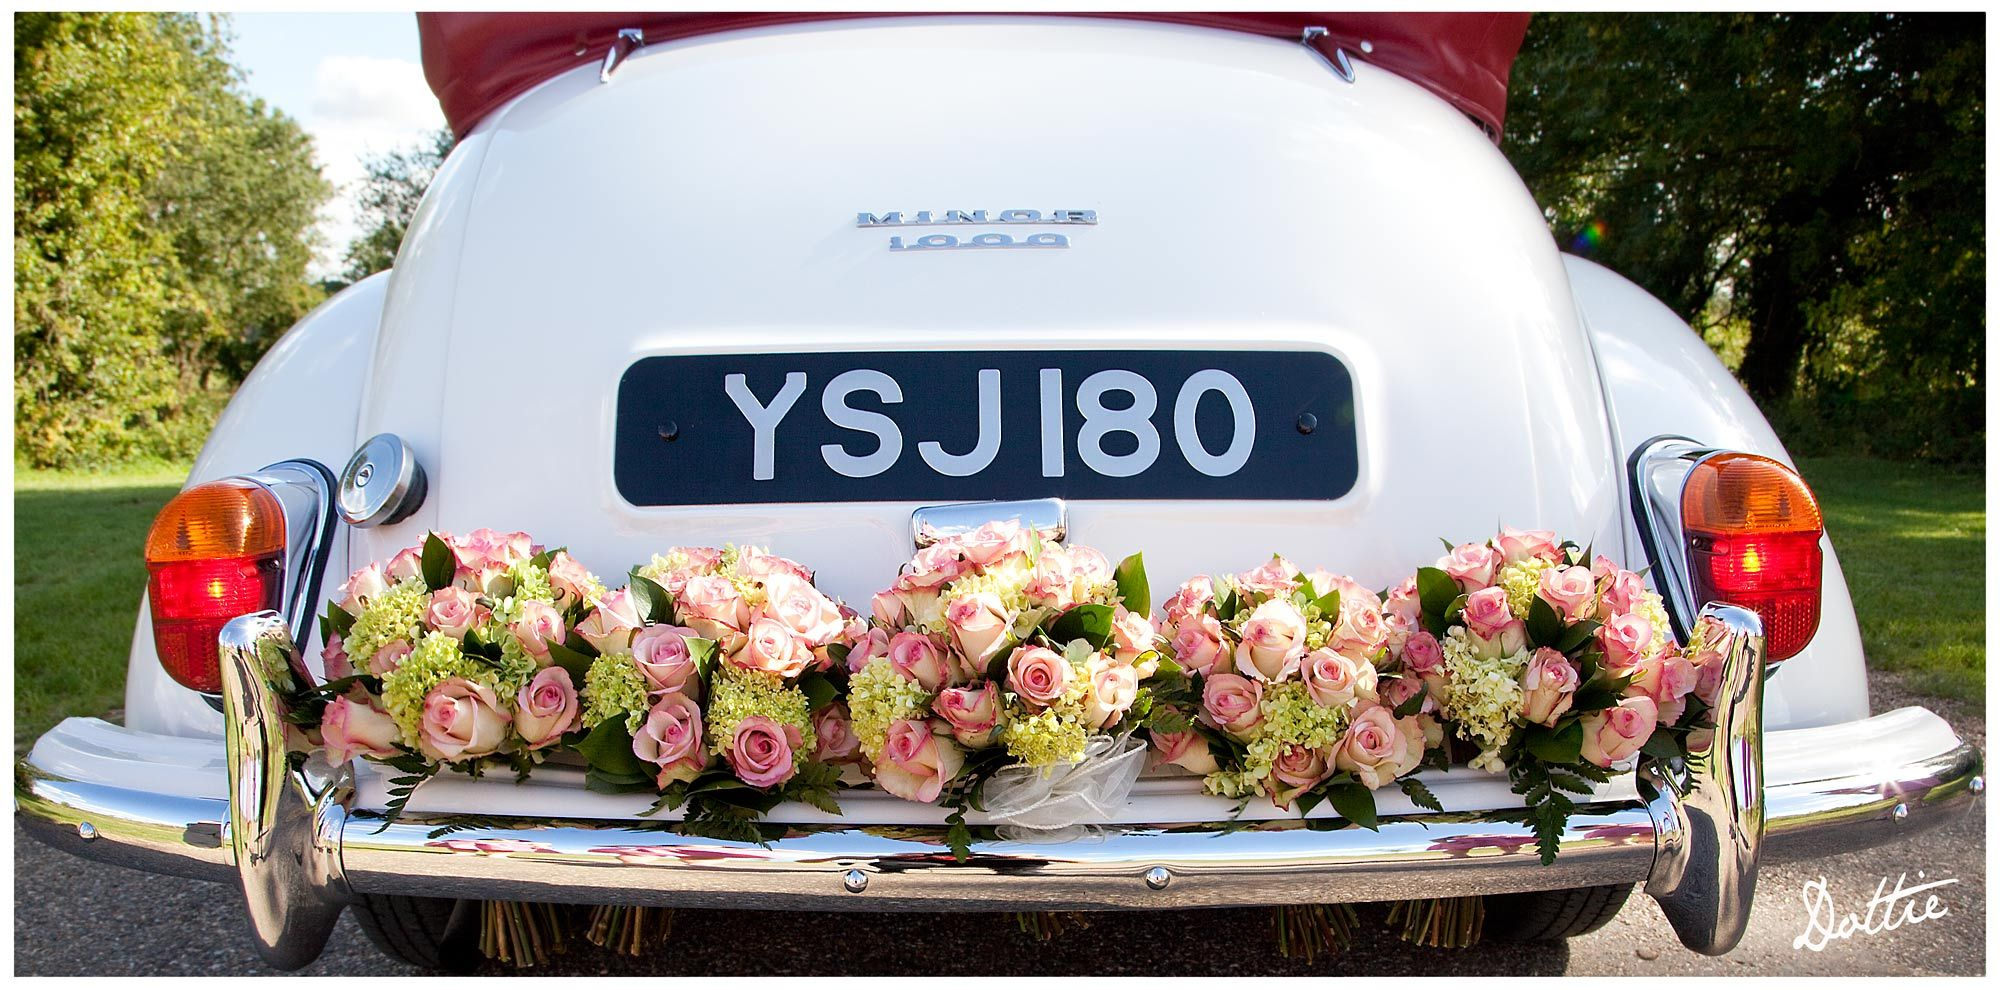 Wedding decorations for car  flowers on back of car  Flowers and cars  Pinterest  Wedding cars